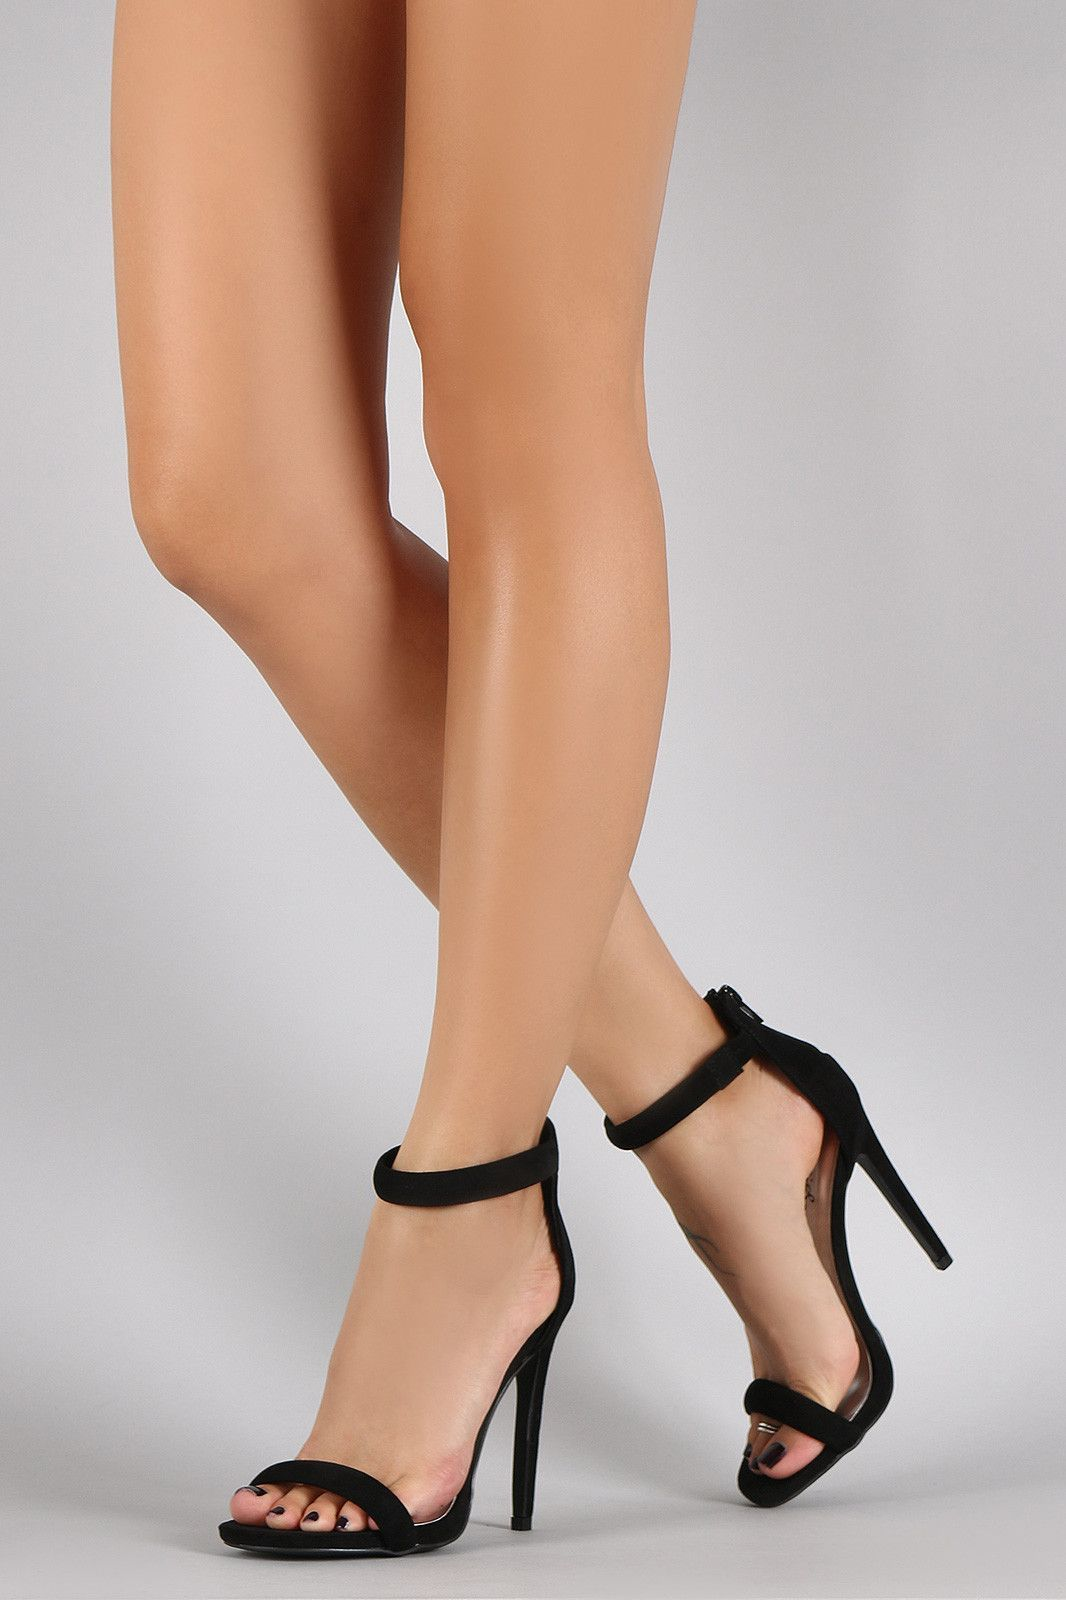 0c72f4ffd780 Description This is a classic open toe heel   featuring a single strap vamp  and an ankle strap. Rear back adjustable zipper closure.